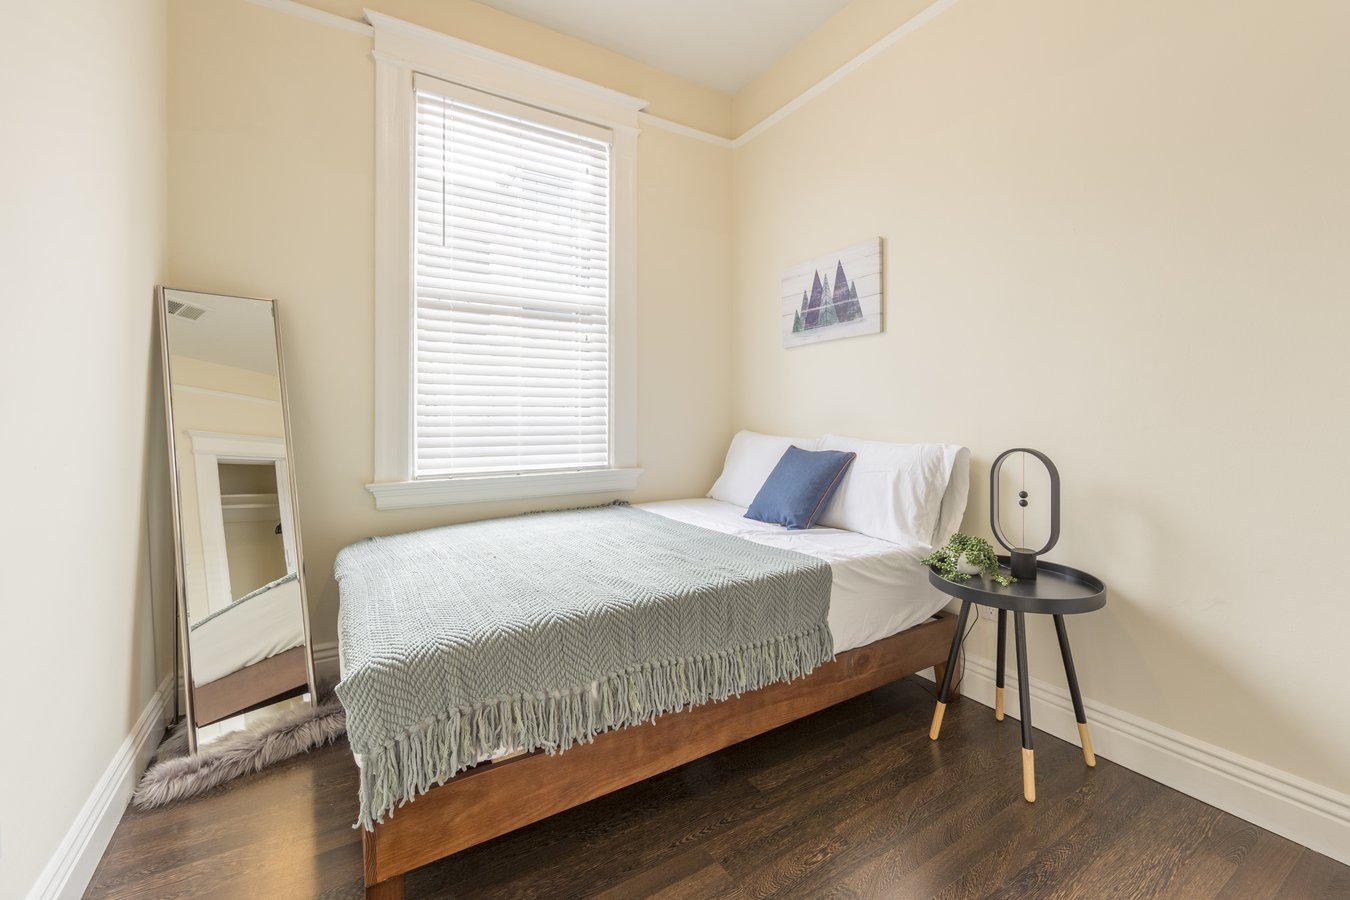 Studio 1 Bathroom House for rent at Vallejo St & Stockton St Coliving in San Francisco, CA